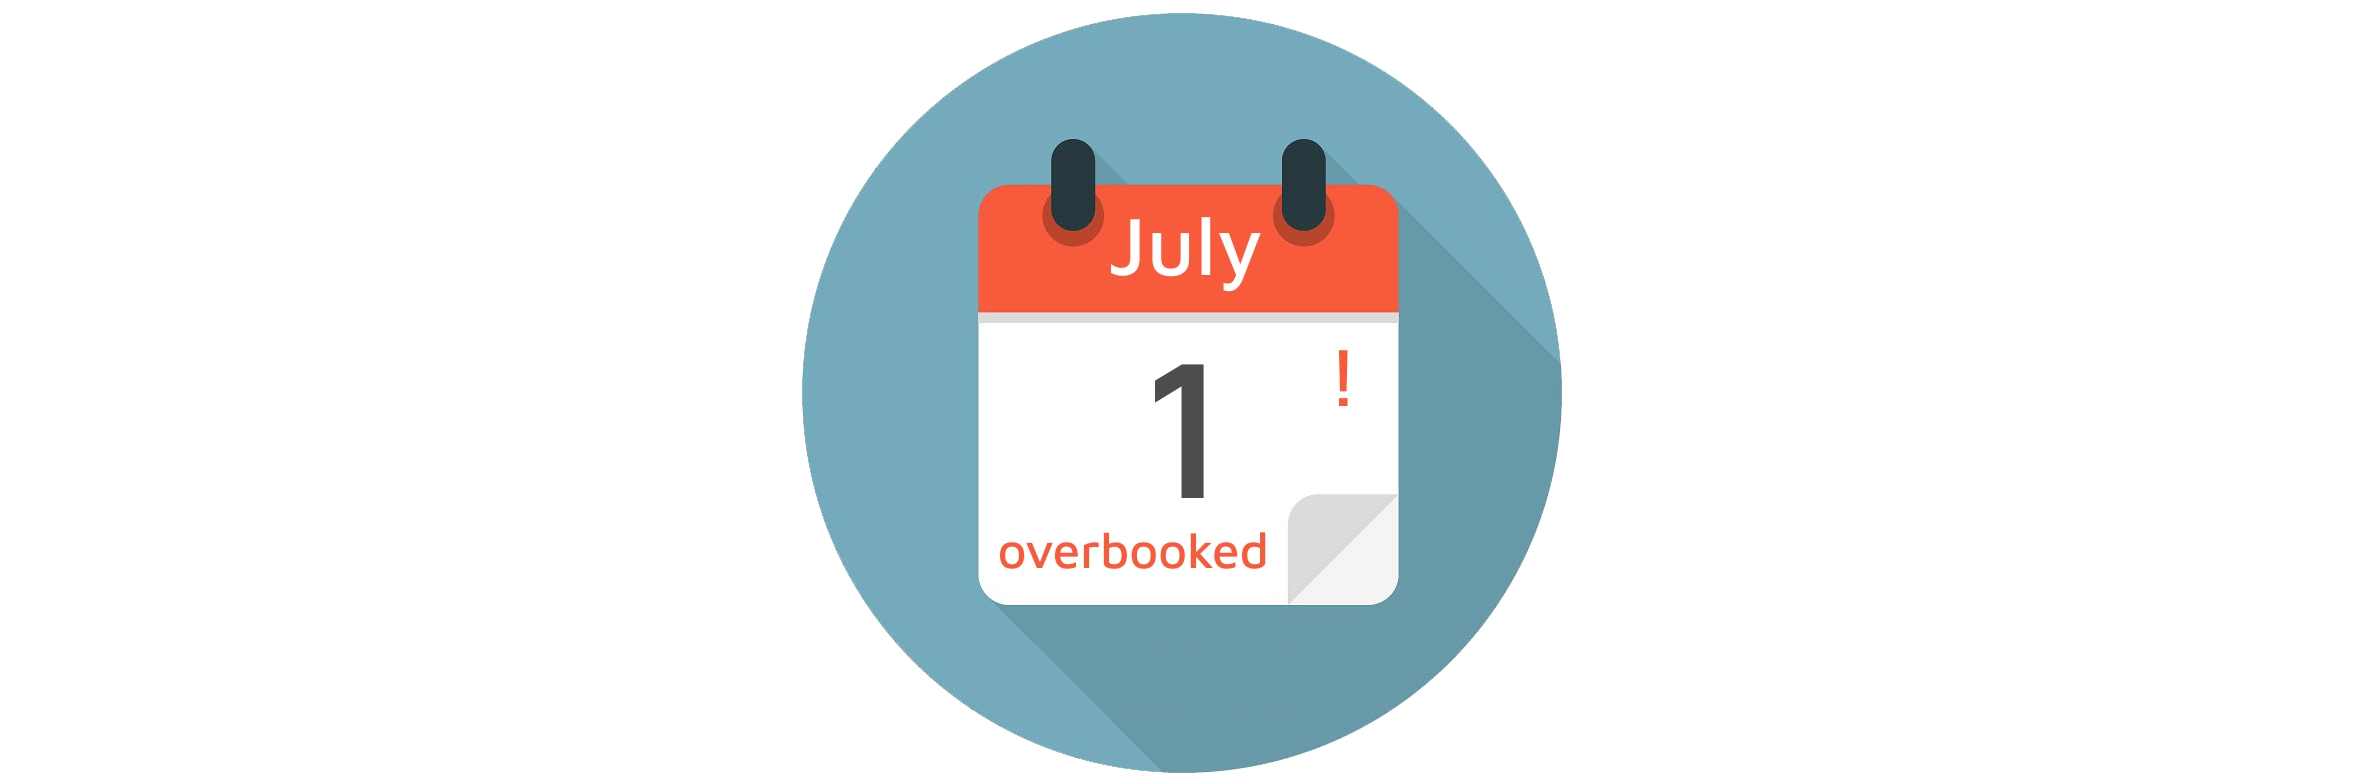 Avoid double bookings by syncing your calendars